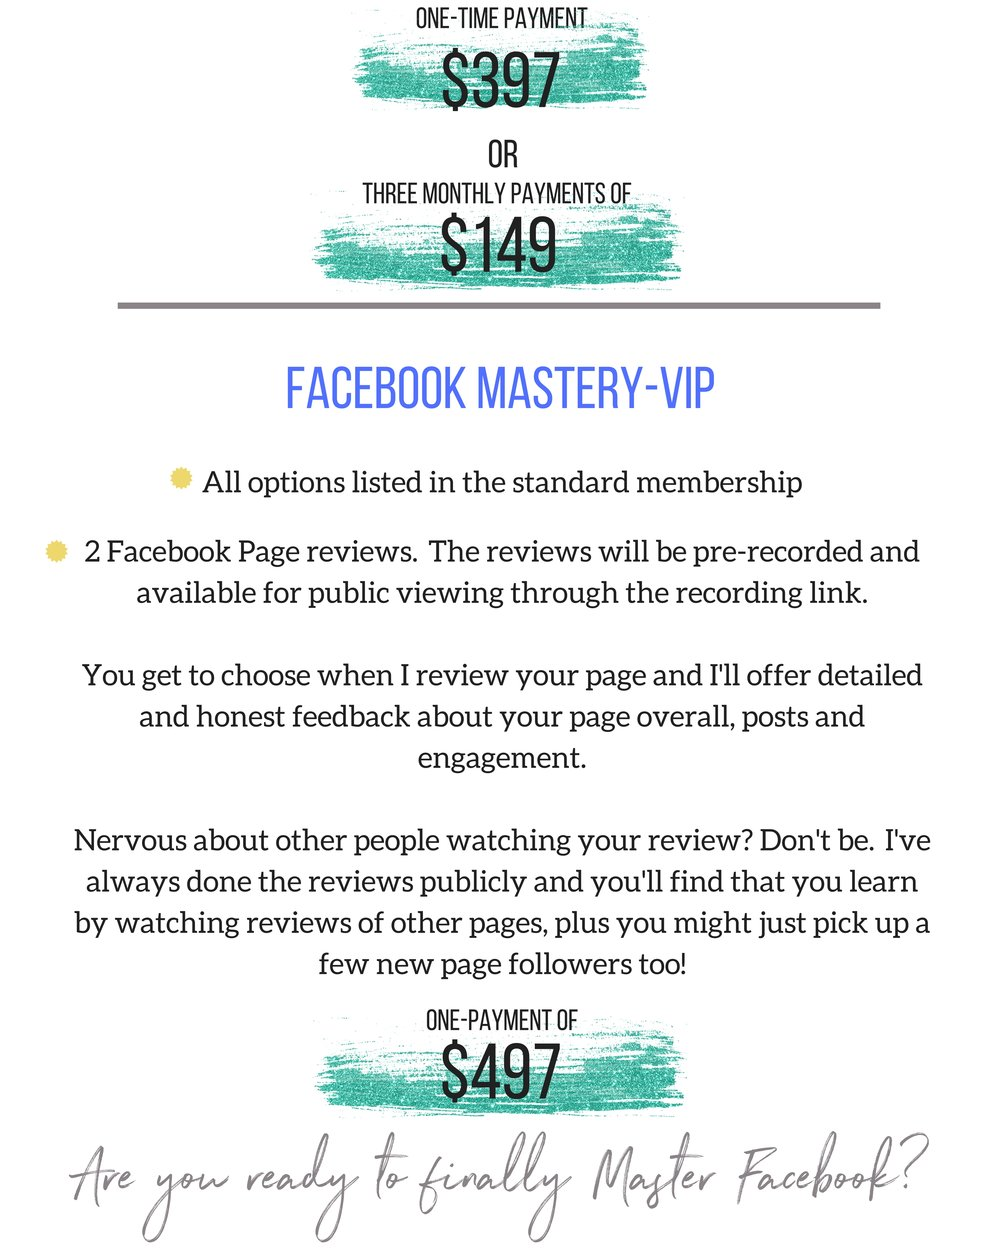 FB Mastery Sales Page-Short Form.jpg